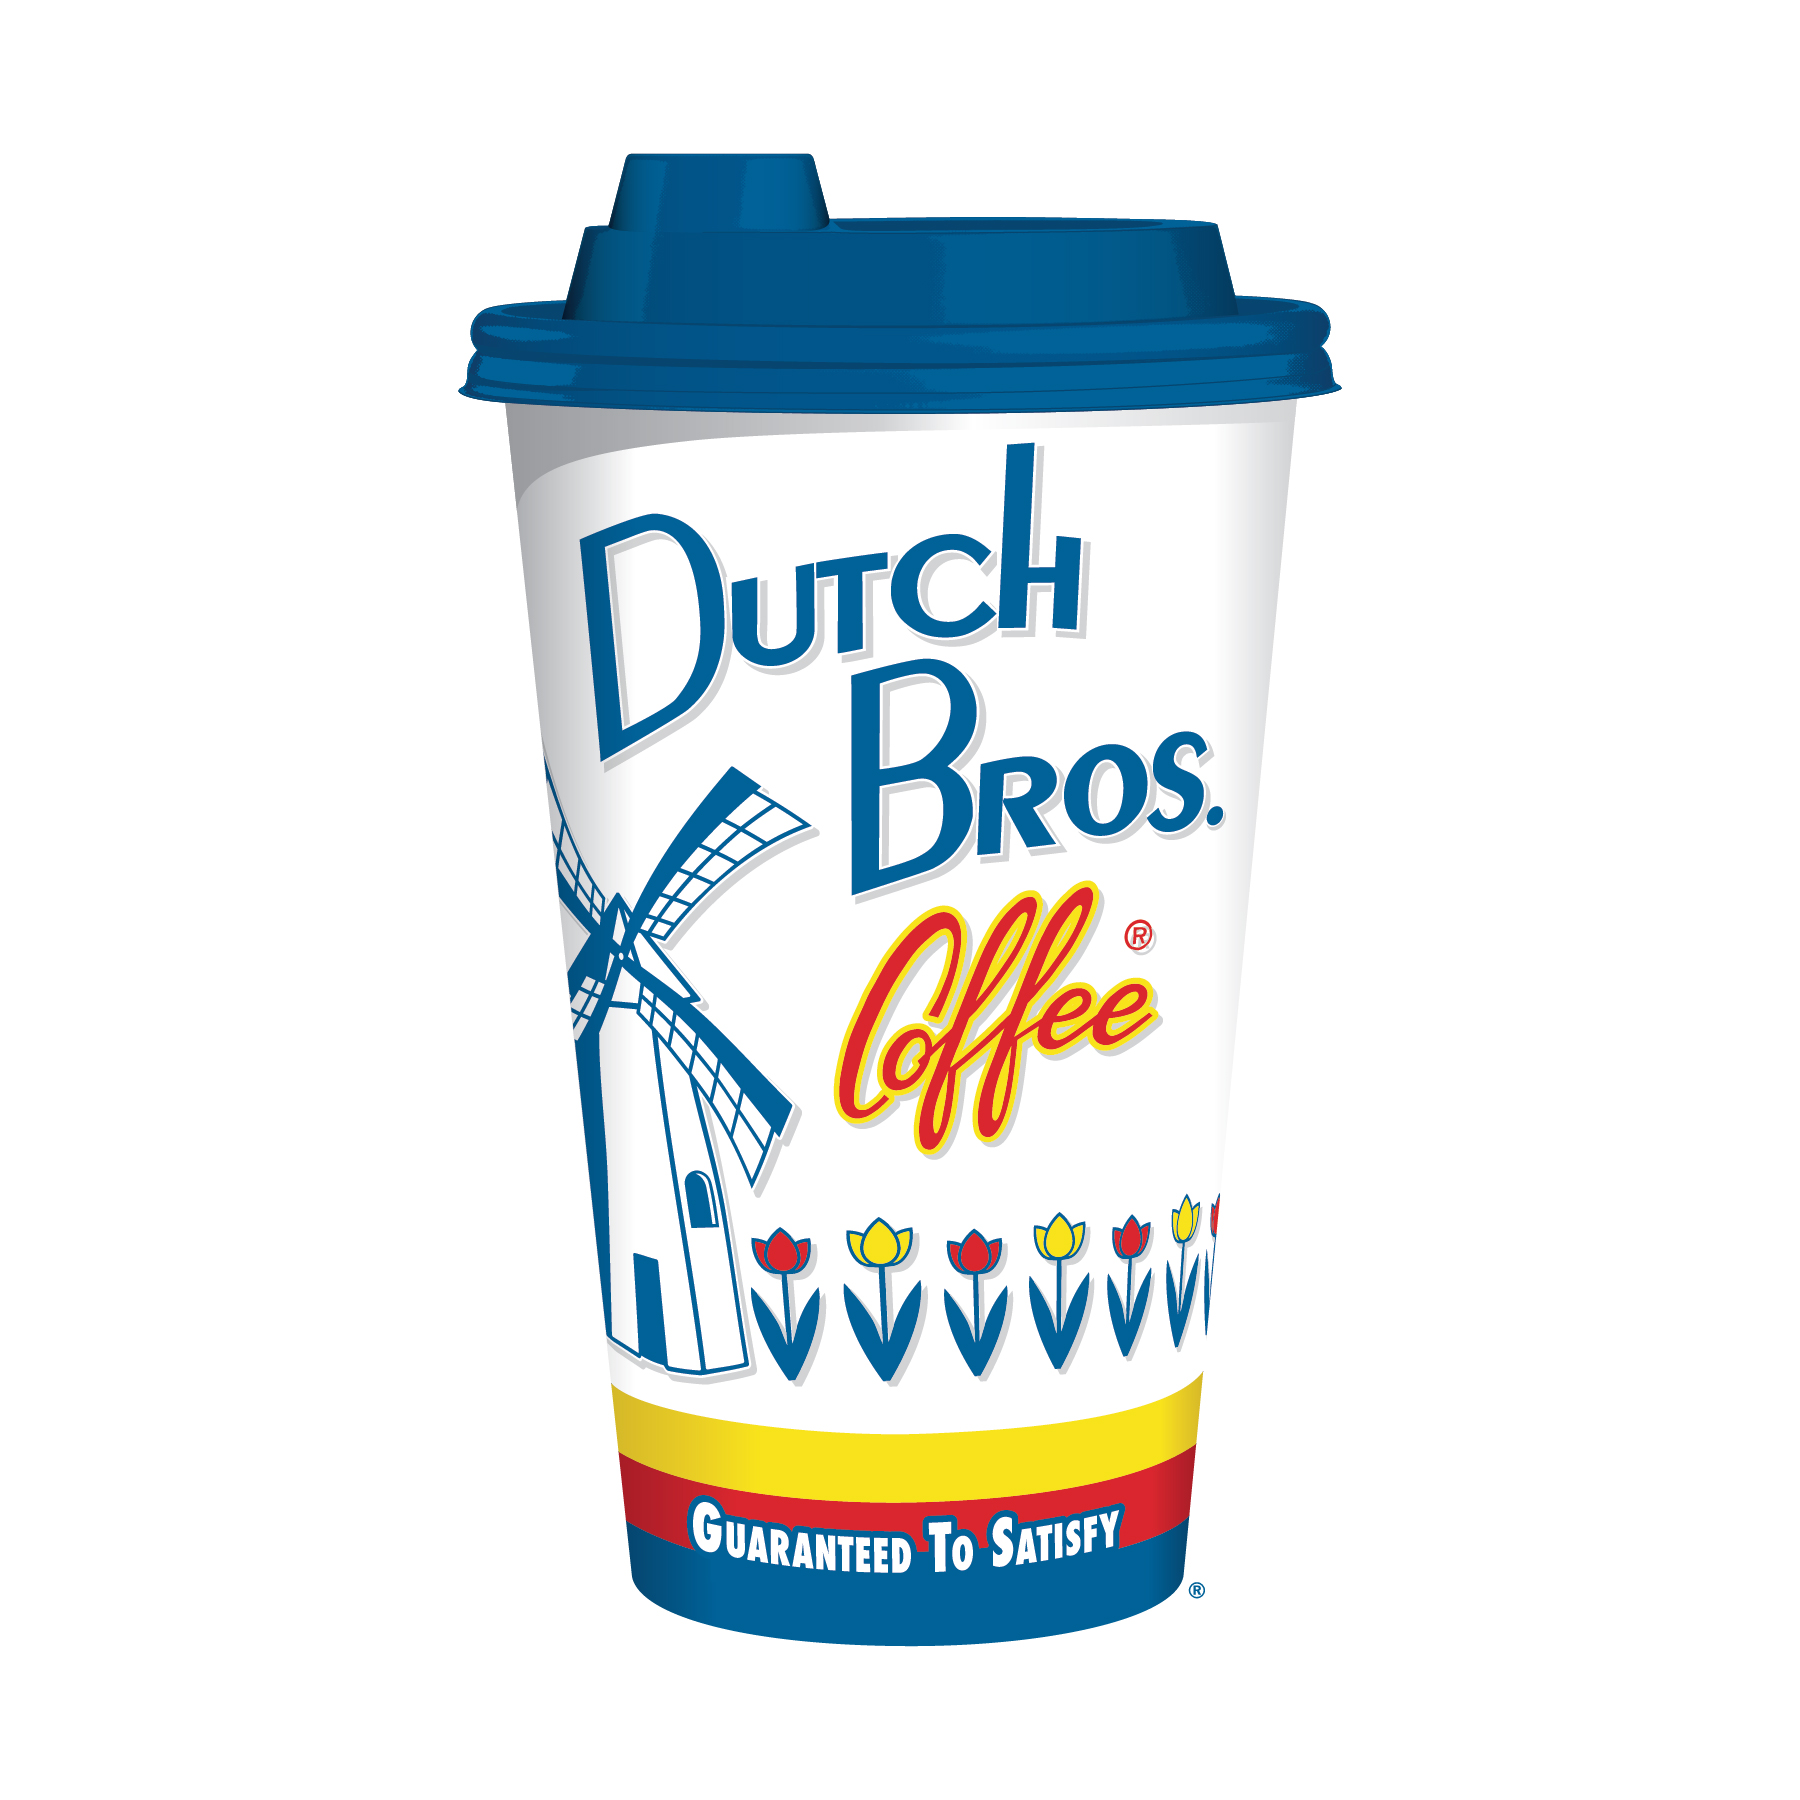 Dutch Bros Beaverton Jams the Dam to Support Make-A-Wish Oregon